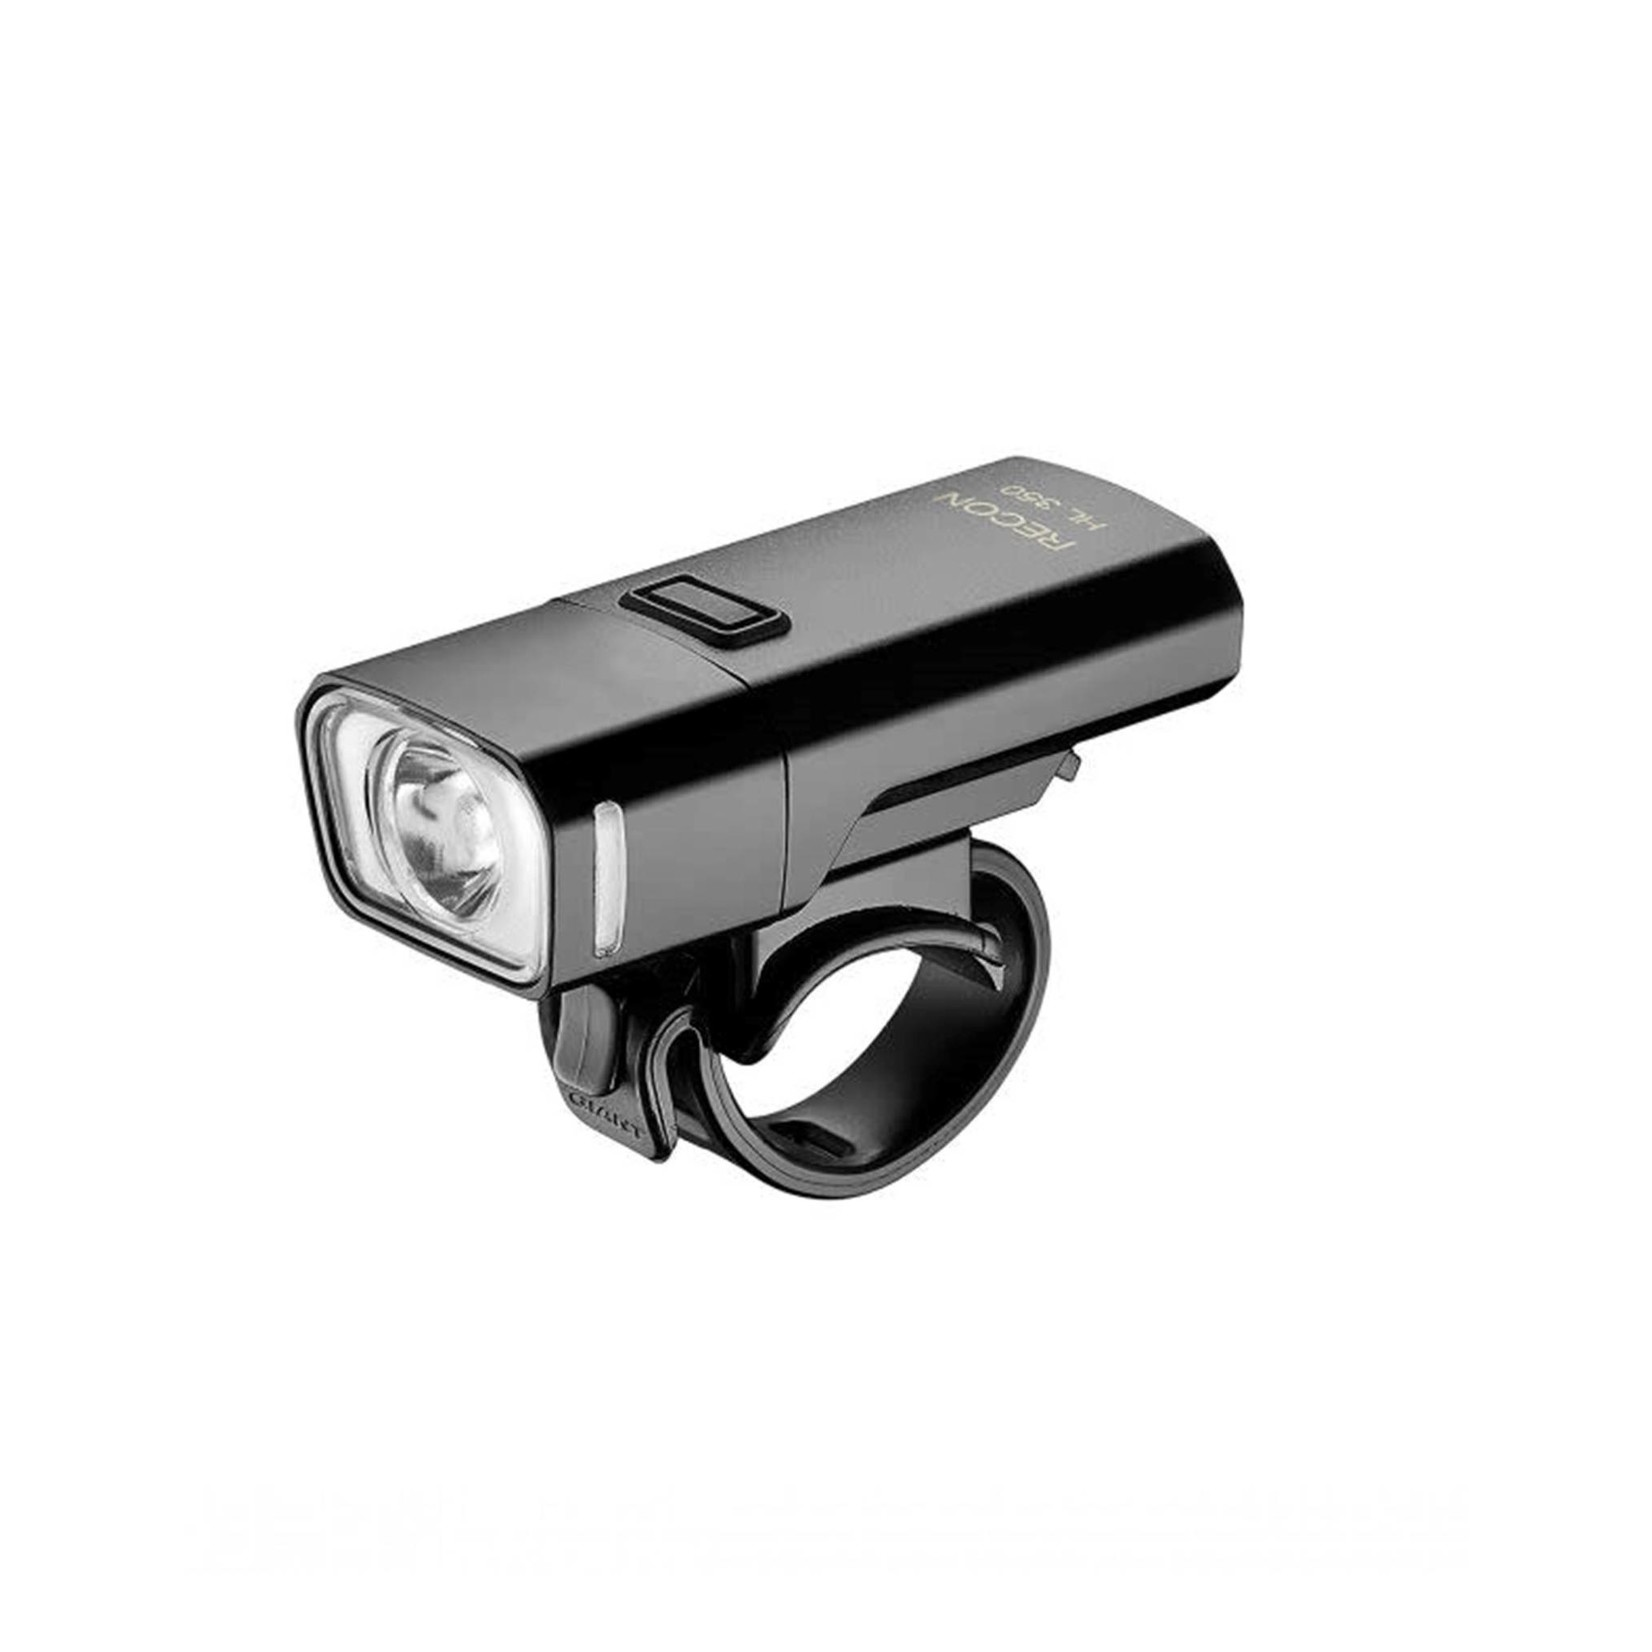 GIANT Giant Recon HL 350 Front Light